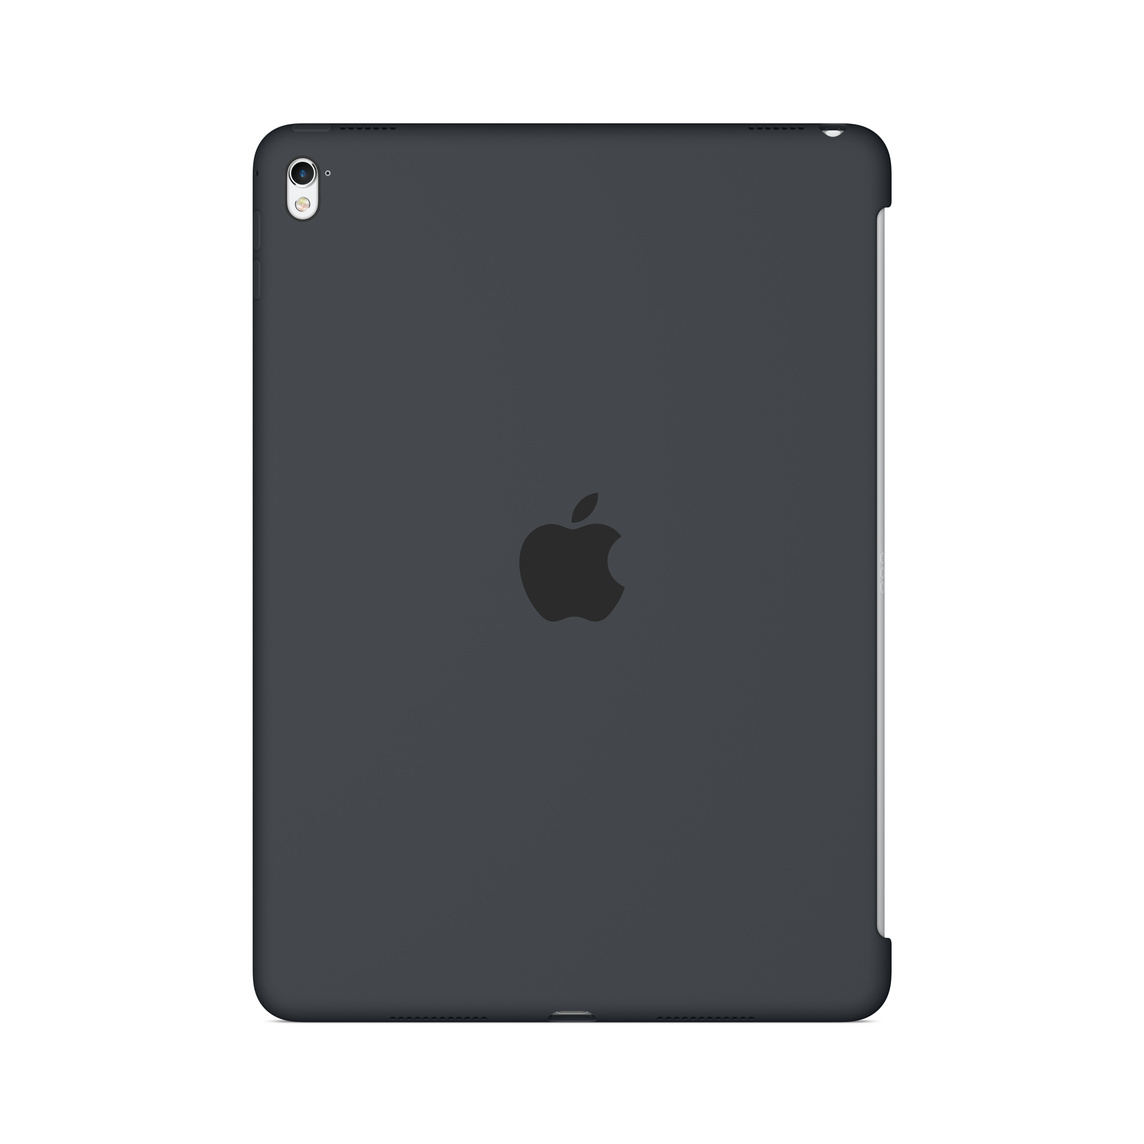 sale retailer d8086 00e83 Silicone Case for 9.7-inch iPad Pro - Charcoal Grey